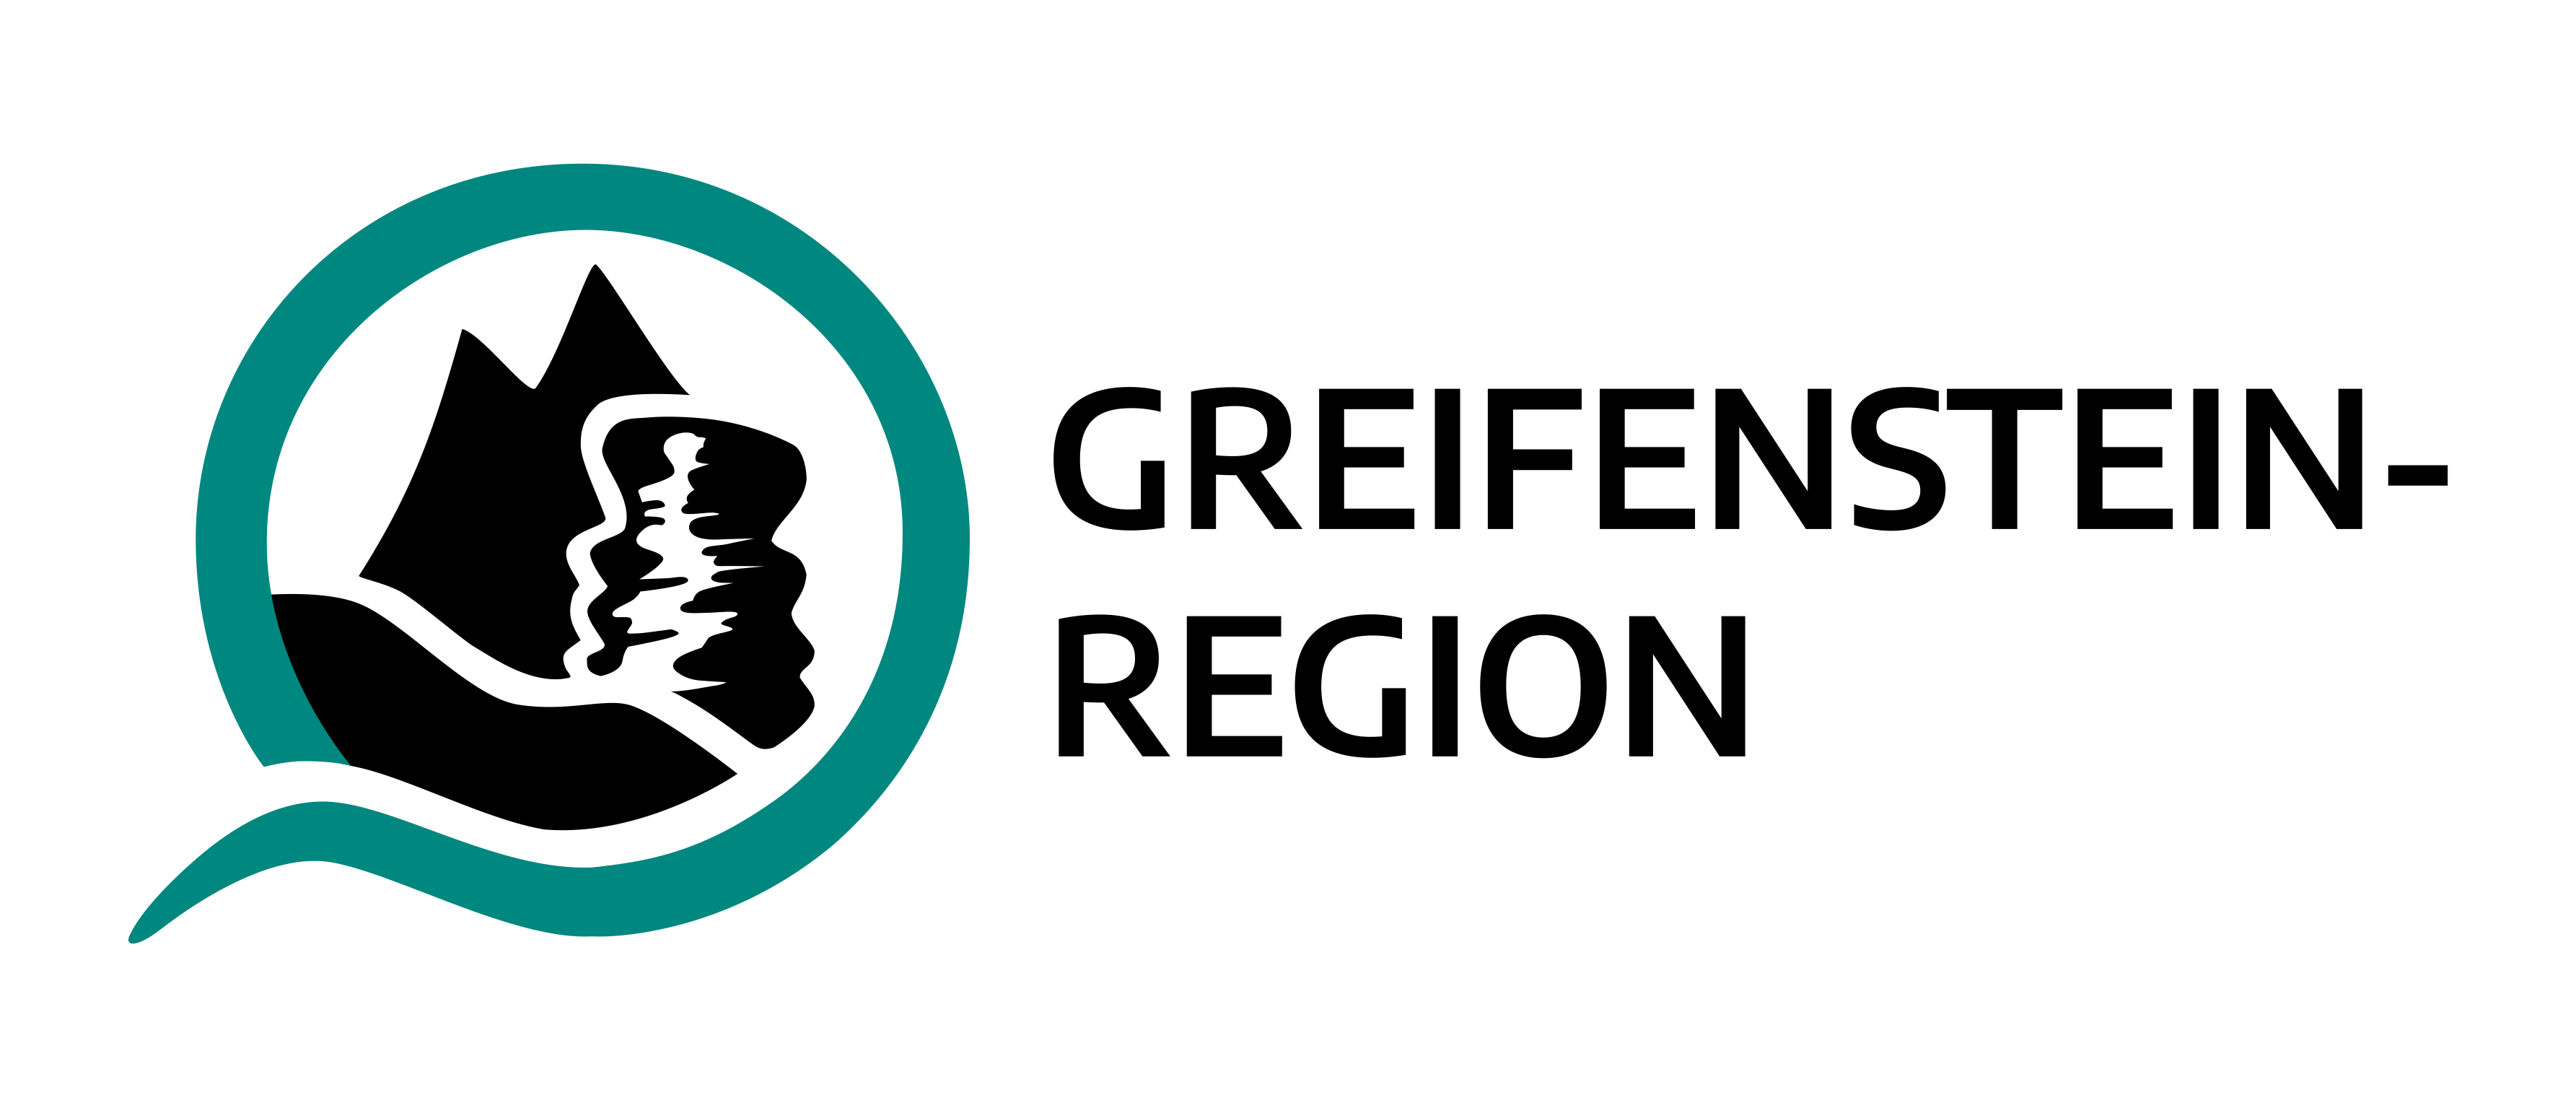 Greifensteinregion